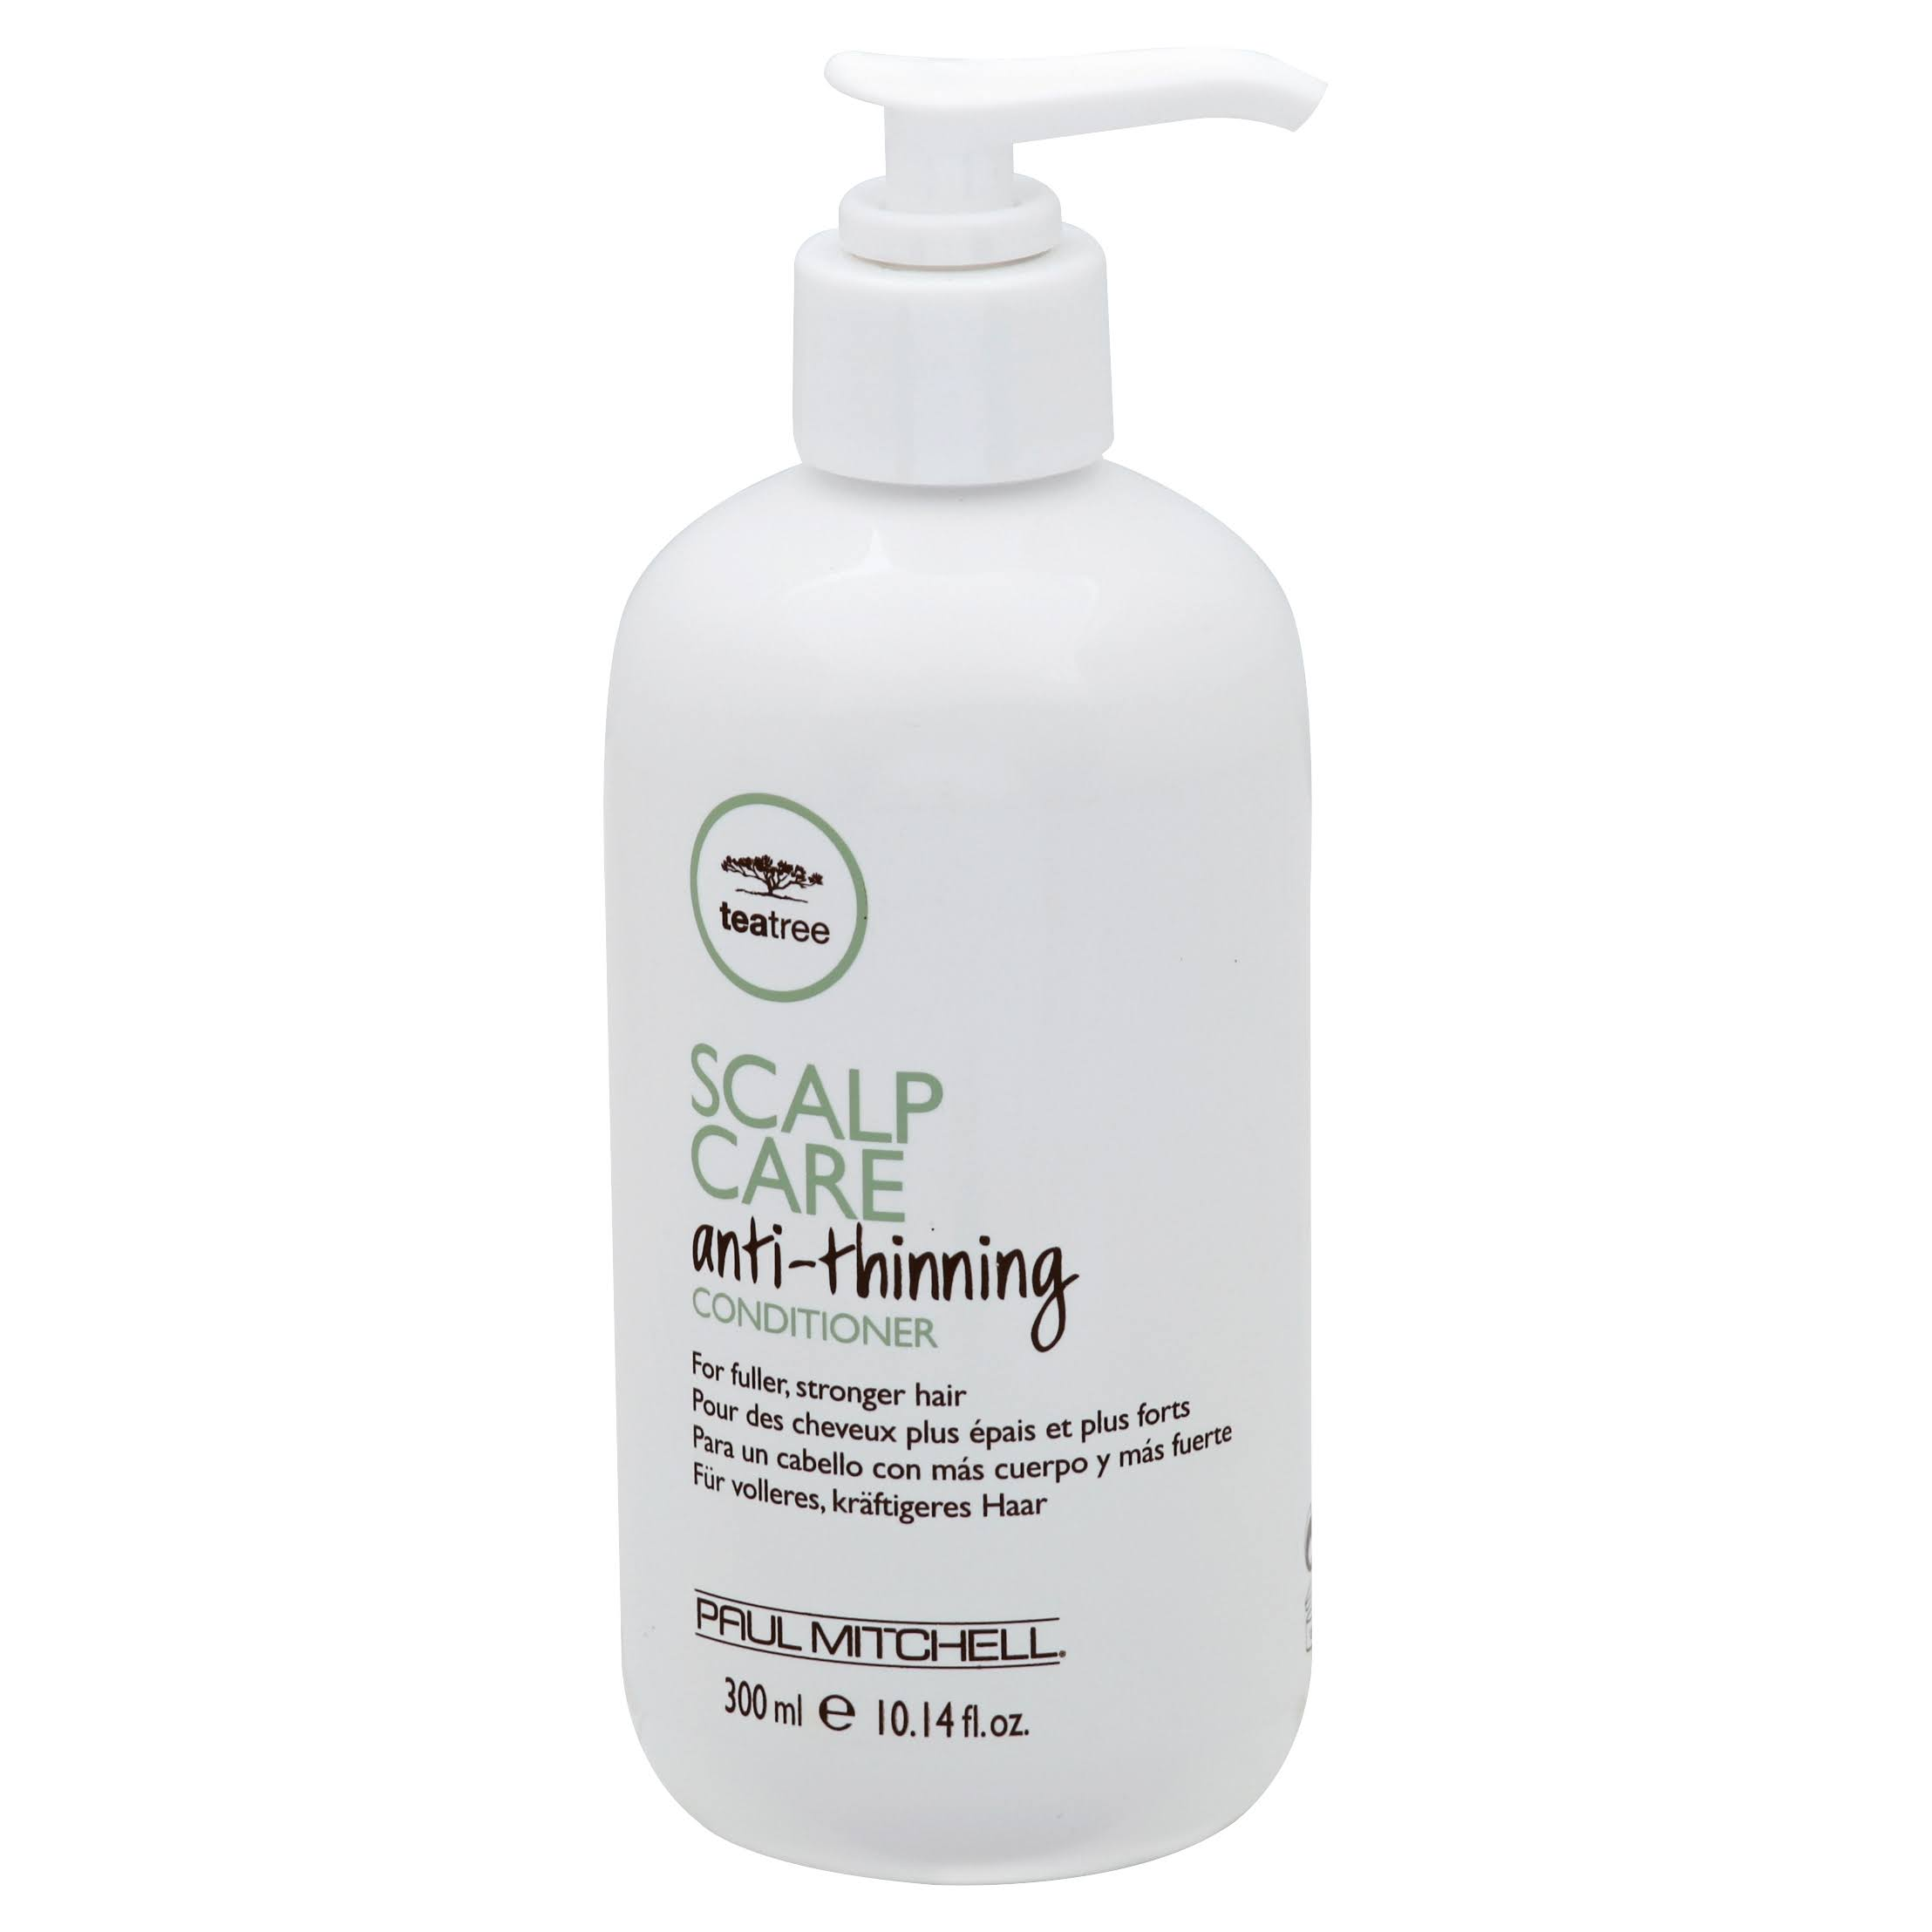 Paul Mitchell Tea Tree Scalp Care Anti-Thinning Conditioner - 10.14oz